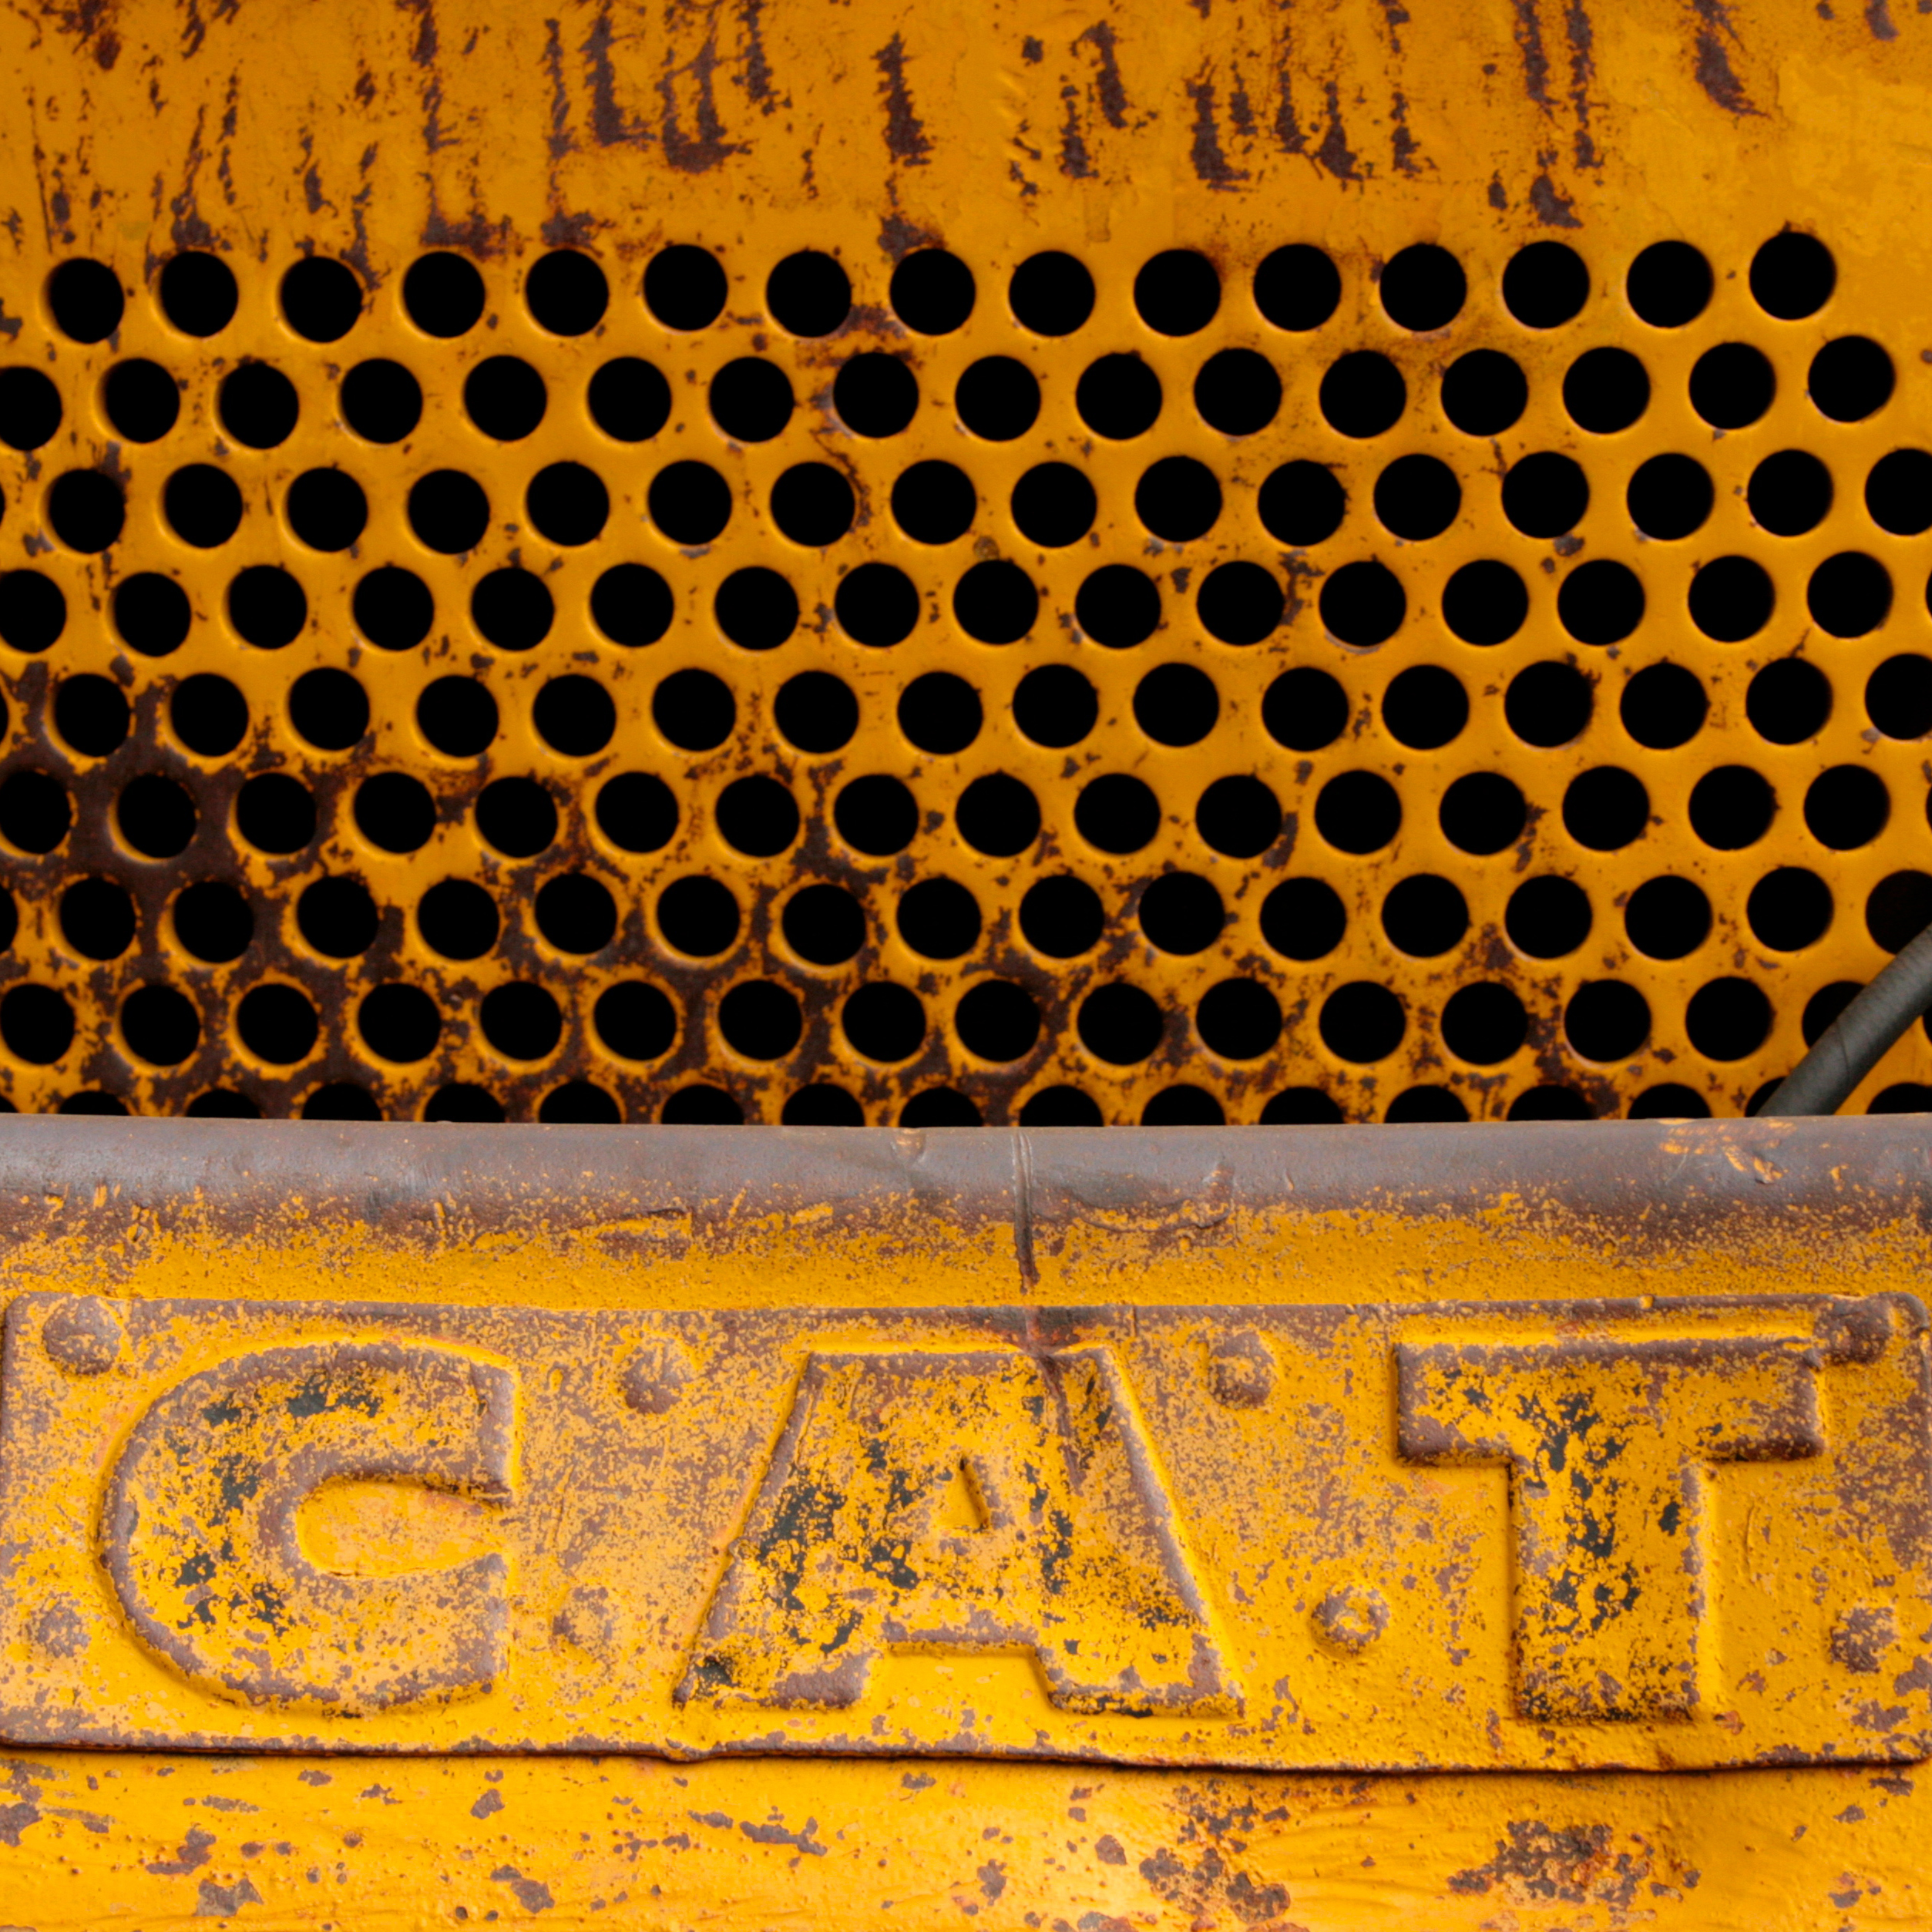 Snowplow detail - Cat, Marie Cameron 2014